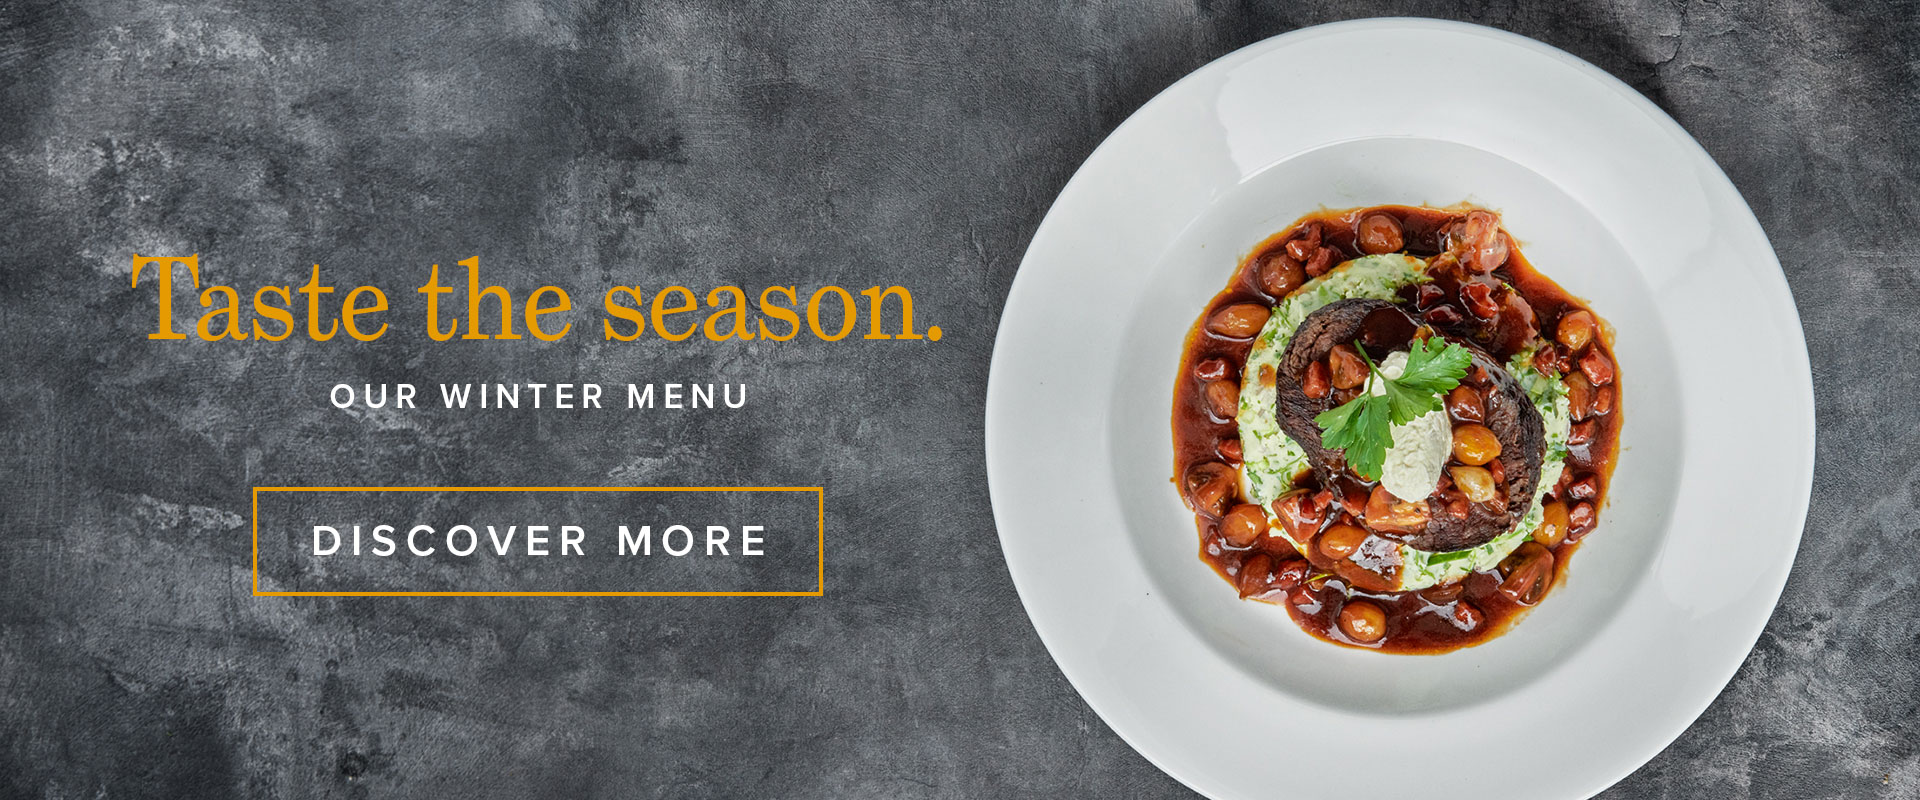 Taste The Season at Browns Sheffield